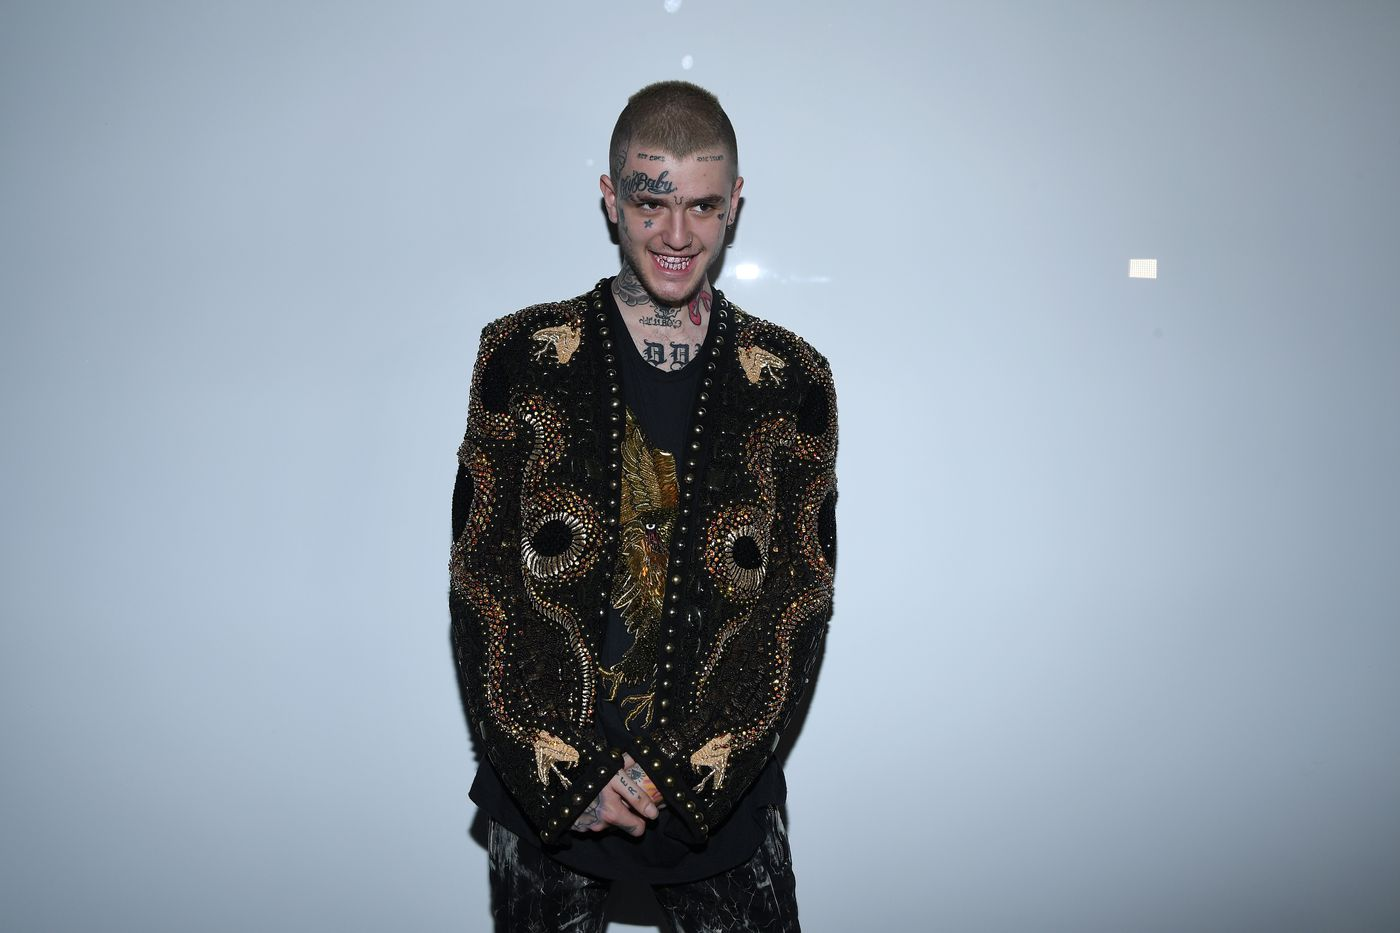 Xxxtentacion Lil Peep And The Future Of Emo The Ringer